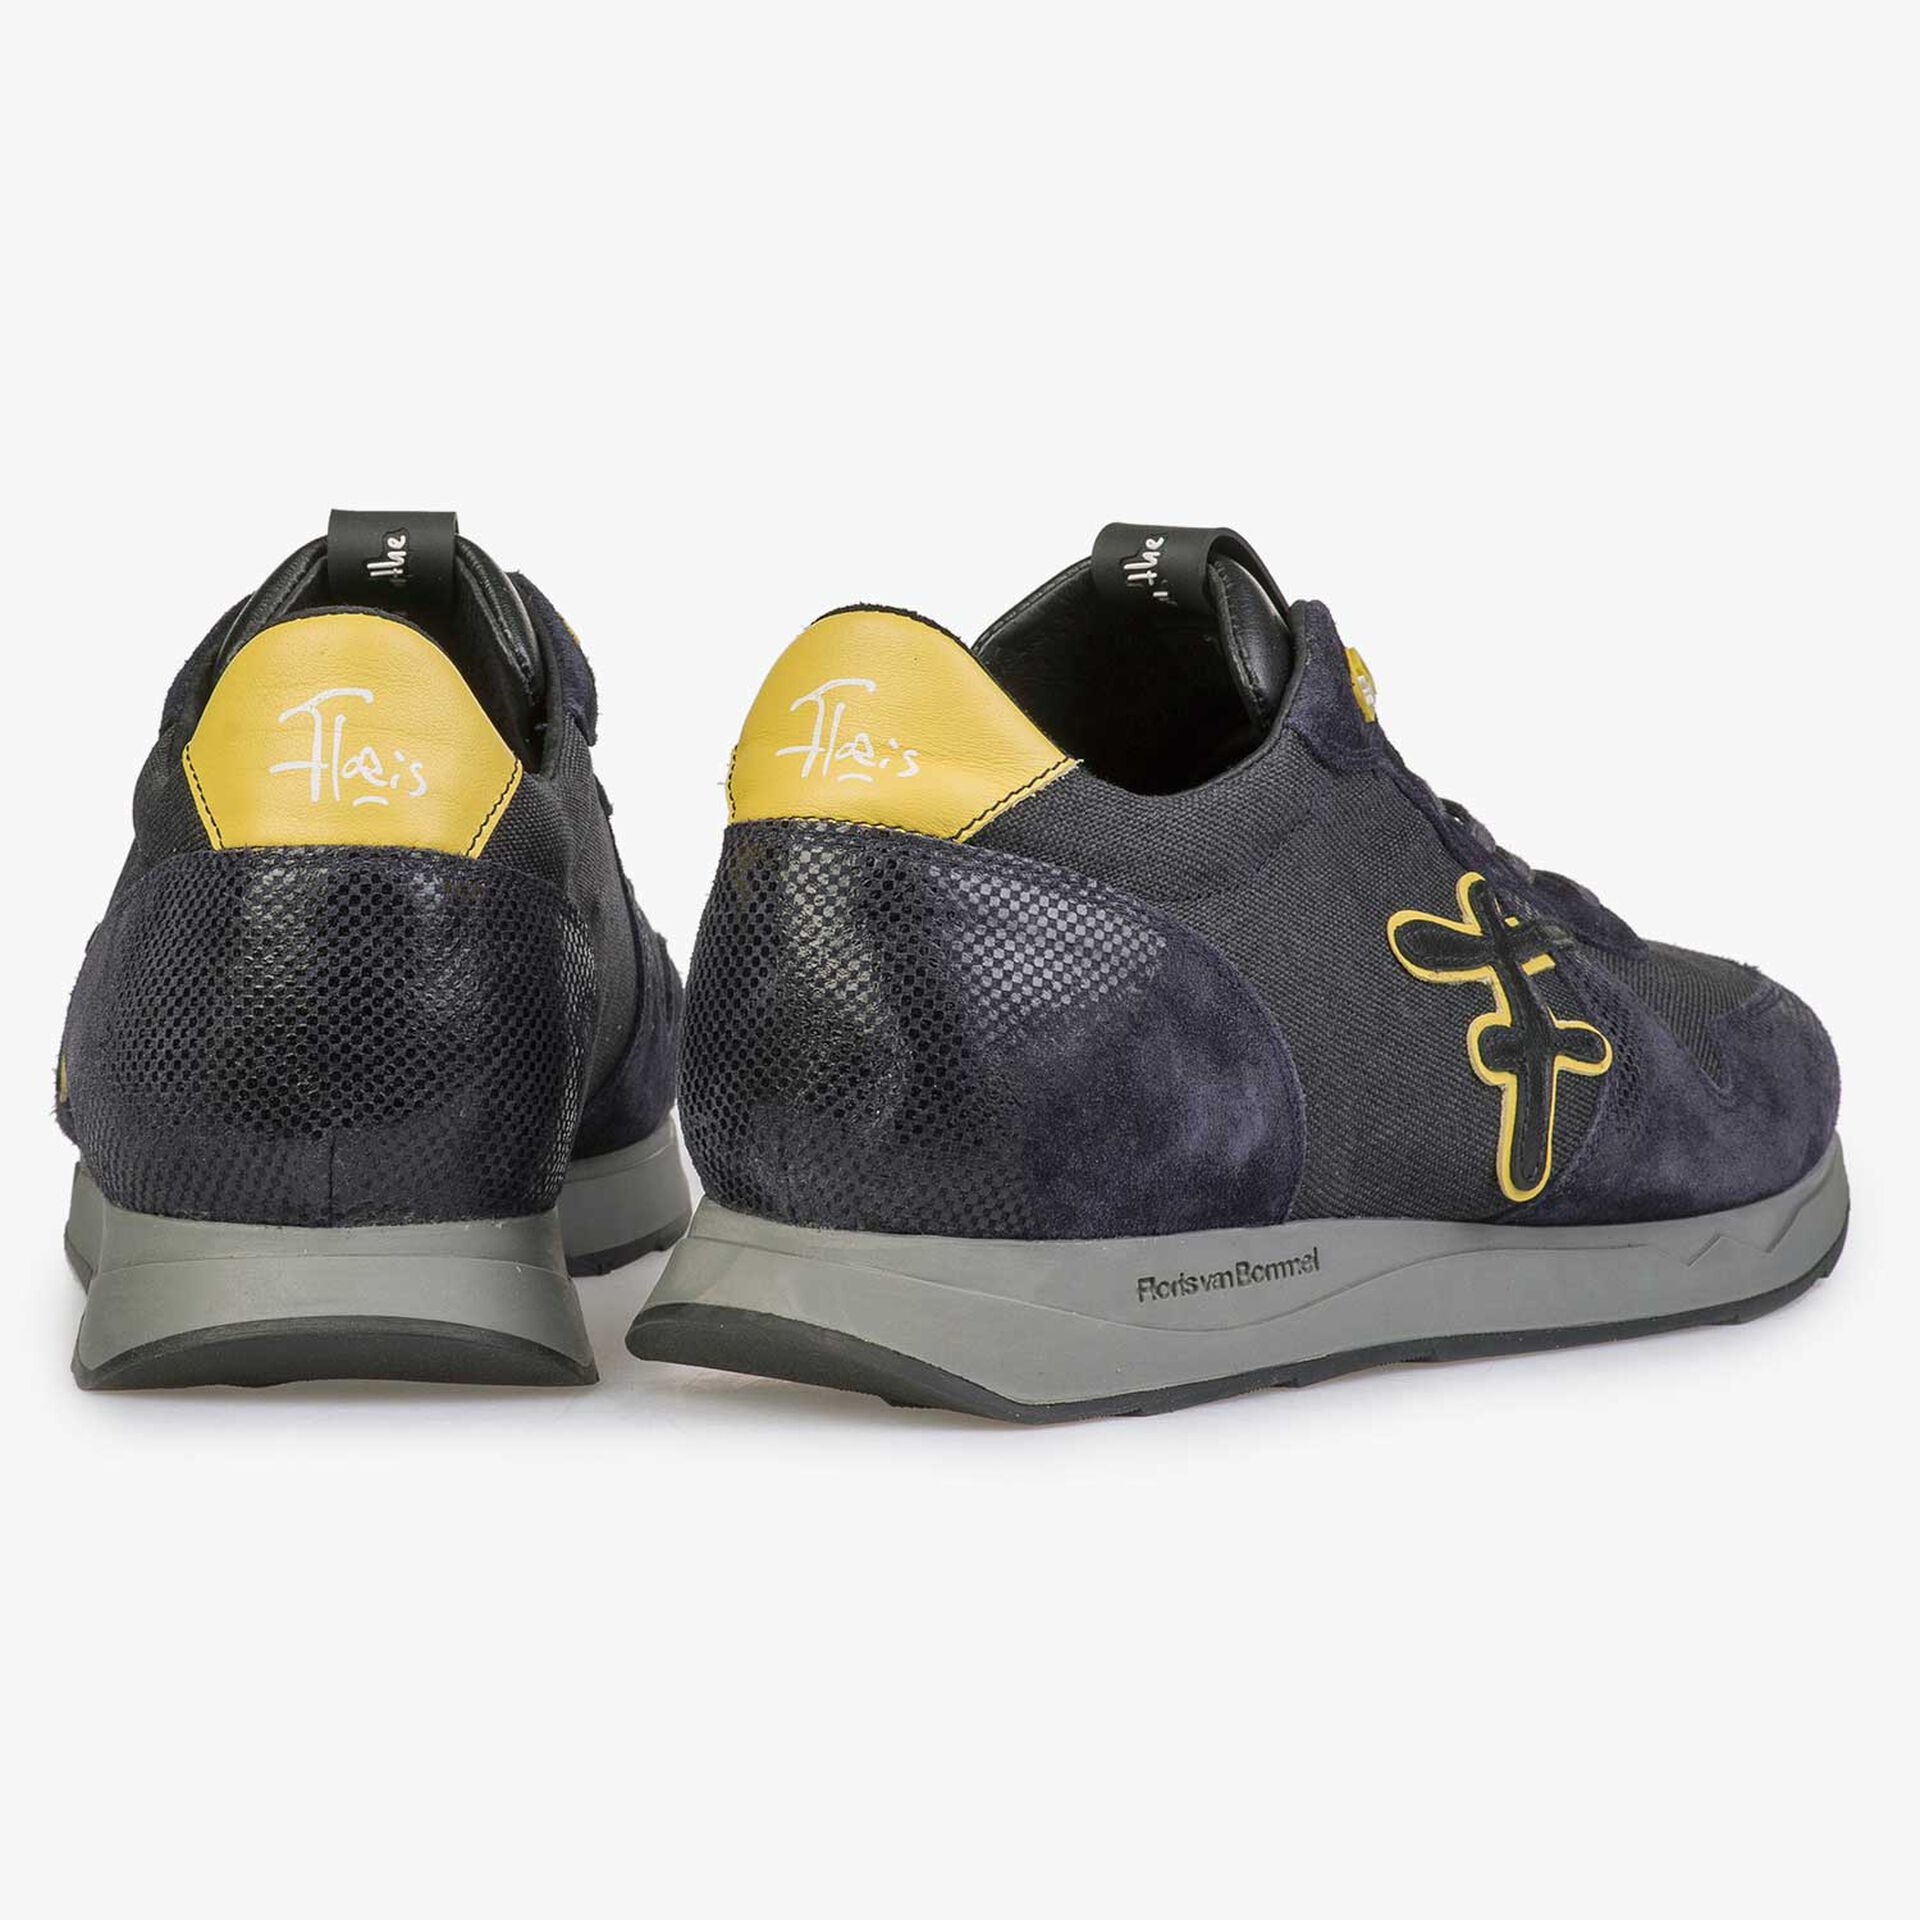 Blue / grey sneaker with yellow details